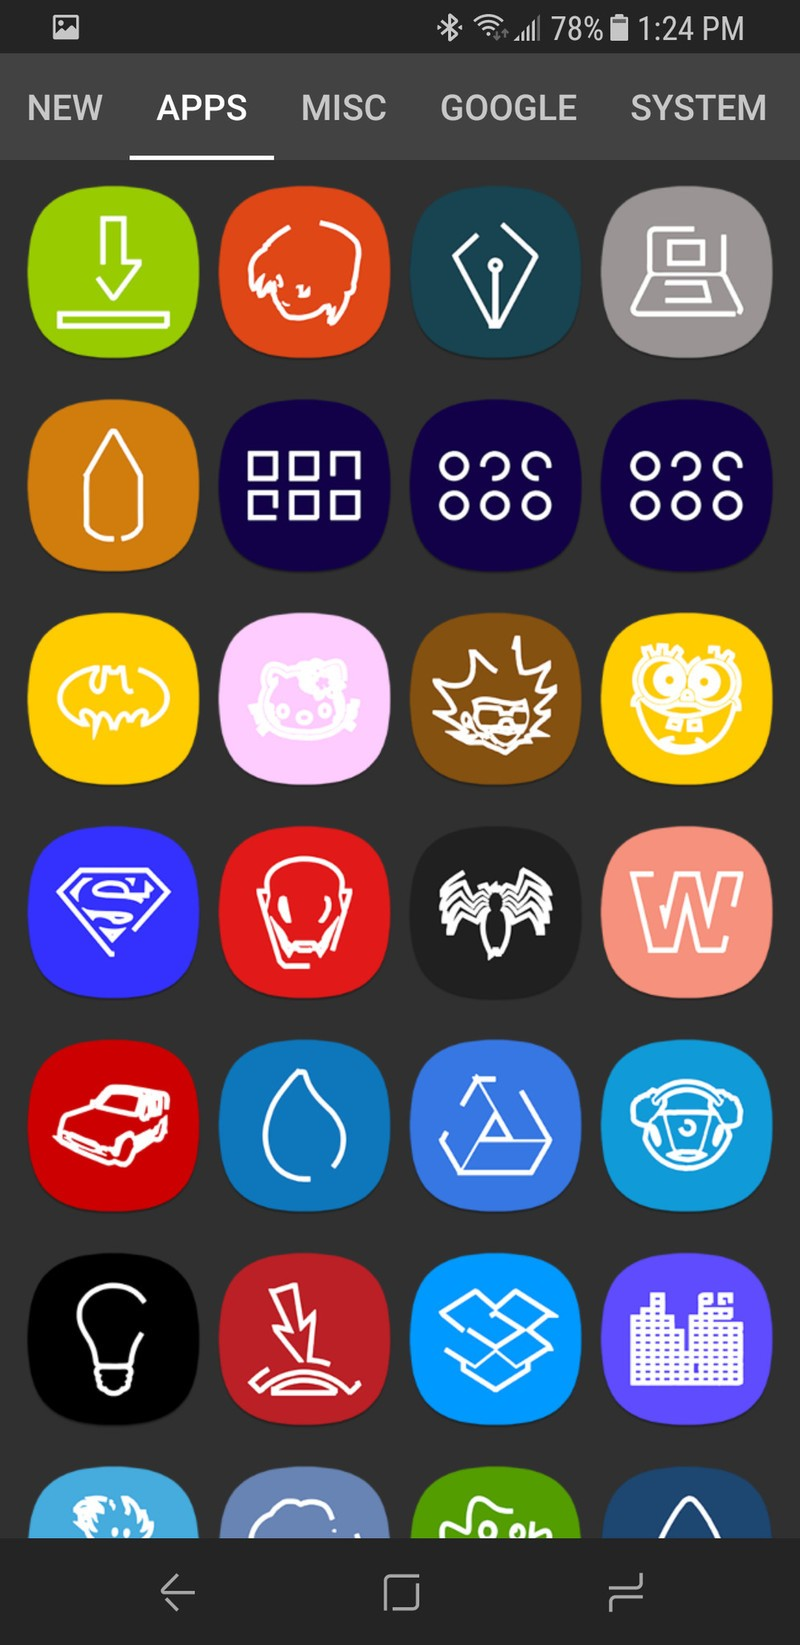 s-eight-app-icons.jpg?itok=lEsQebHX